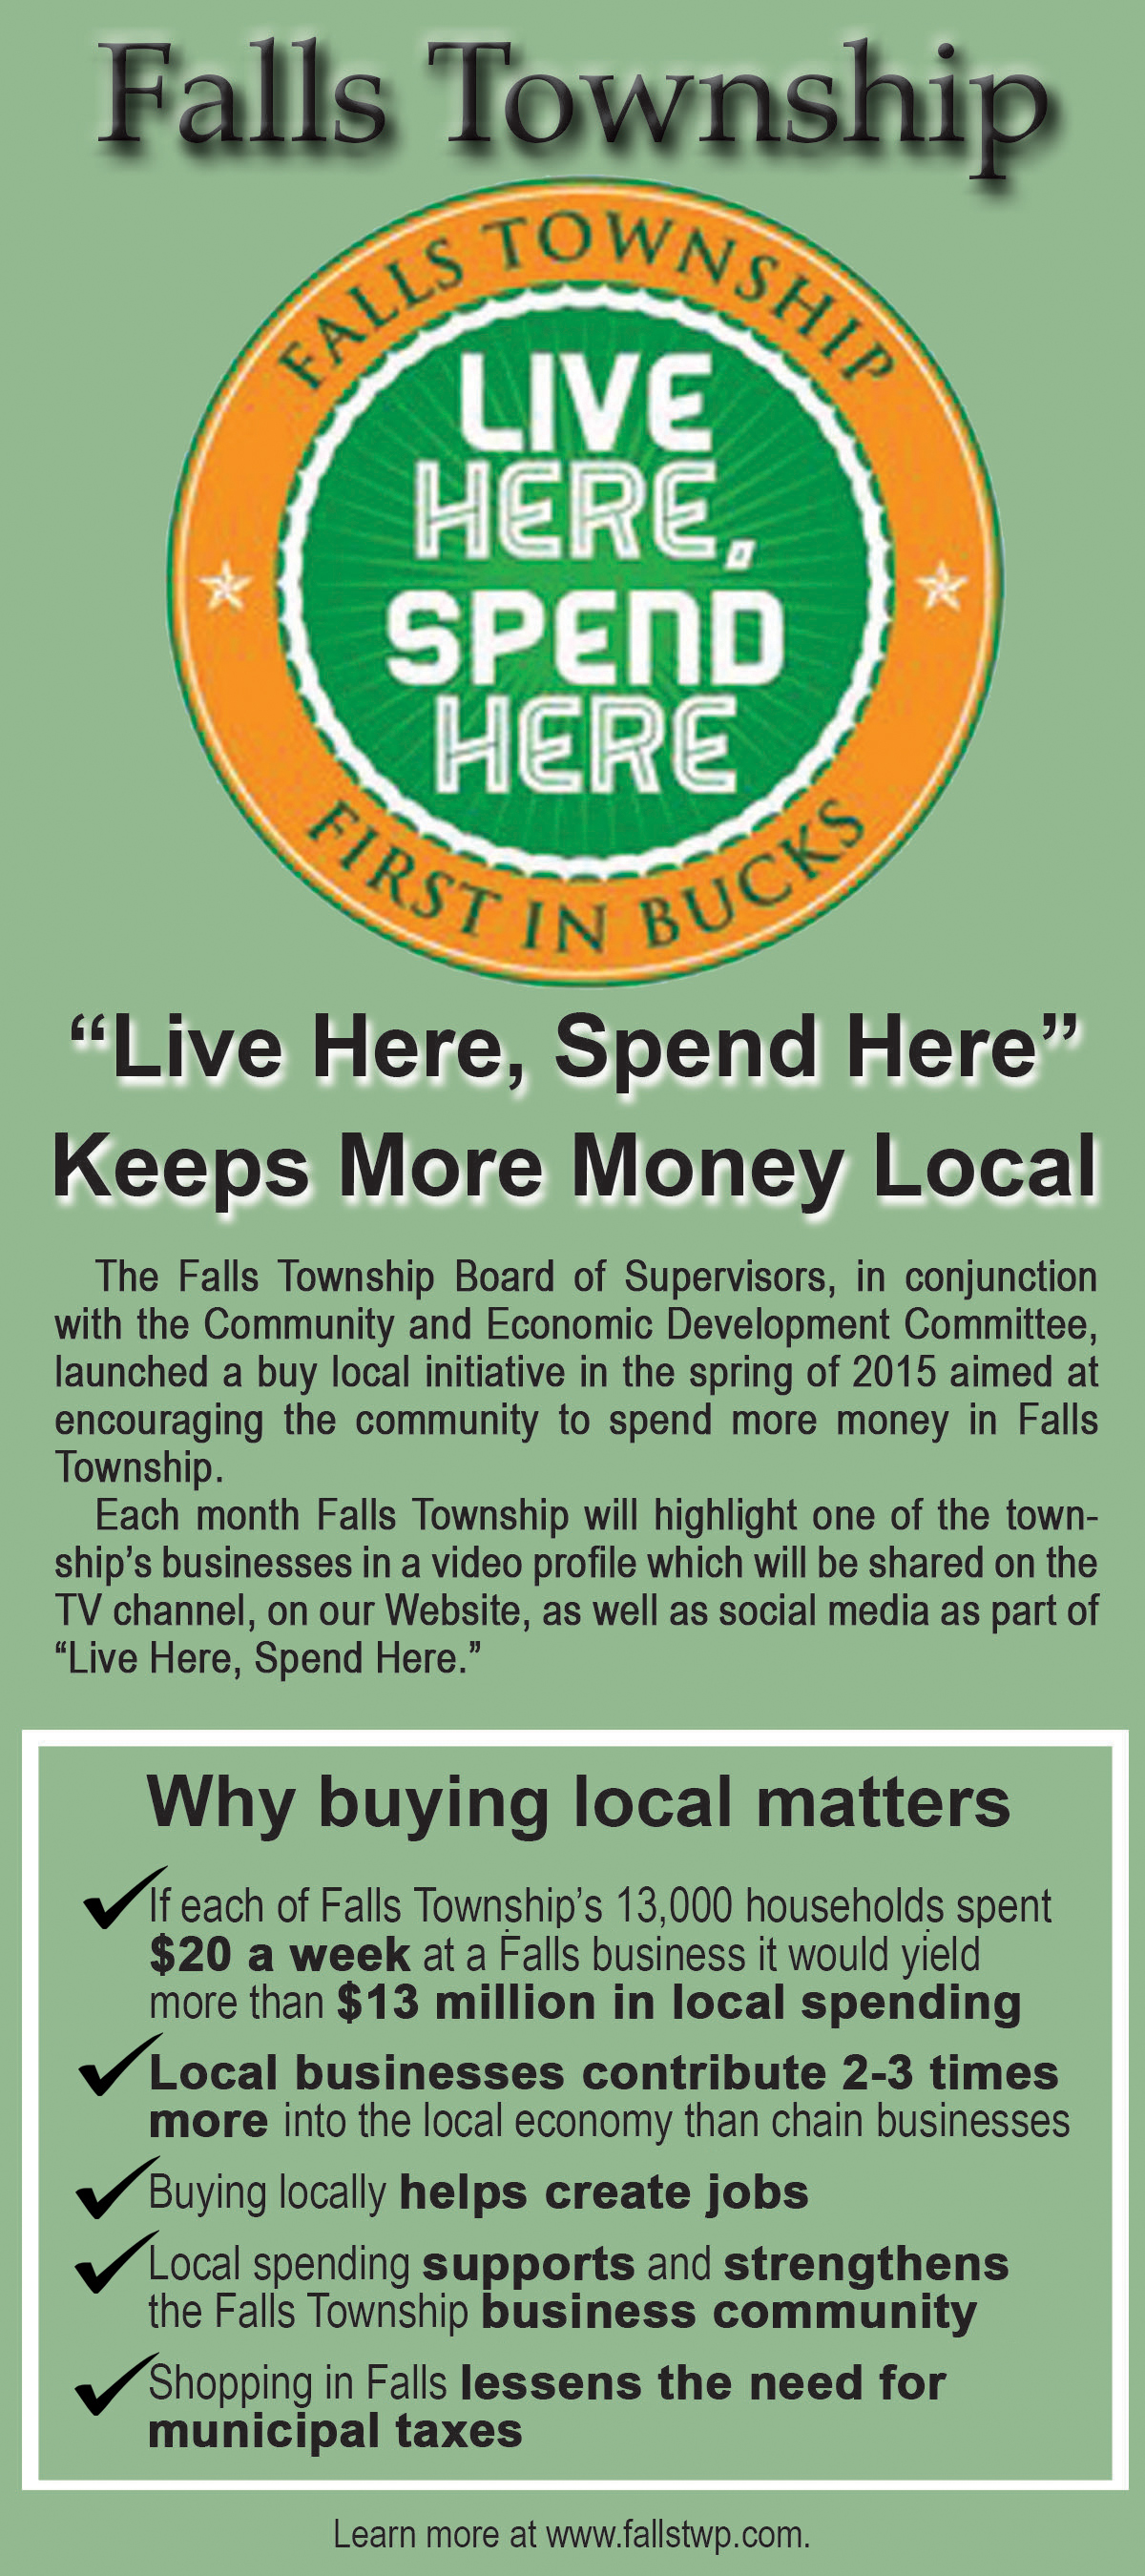 Katalinas Communications designed this rack card for Falls Township, which highlights the township's Live Here, Spend Here effort.